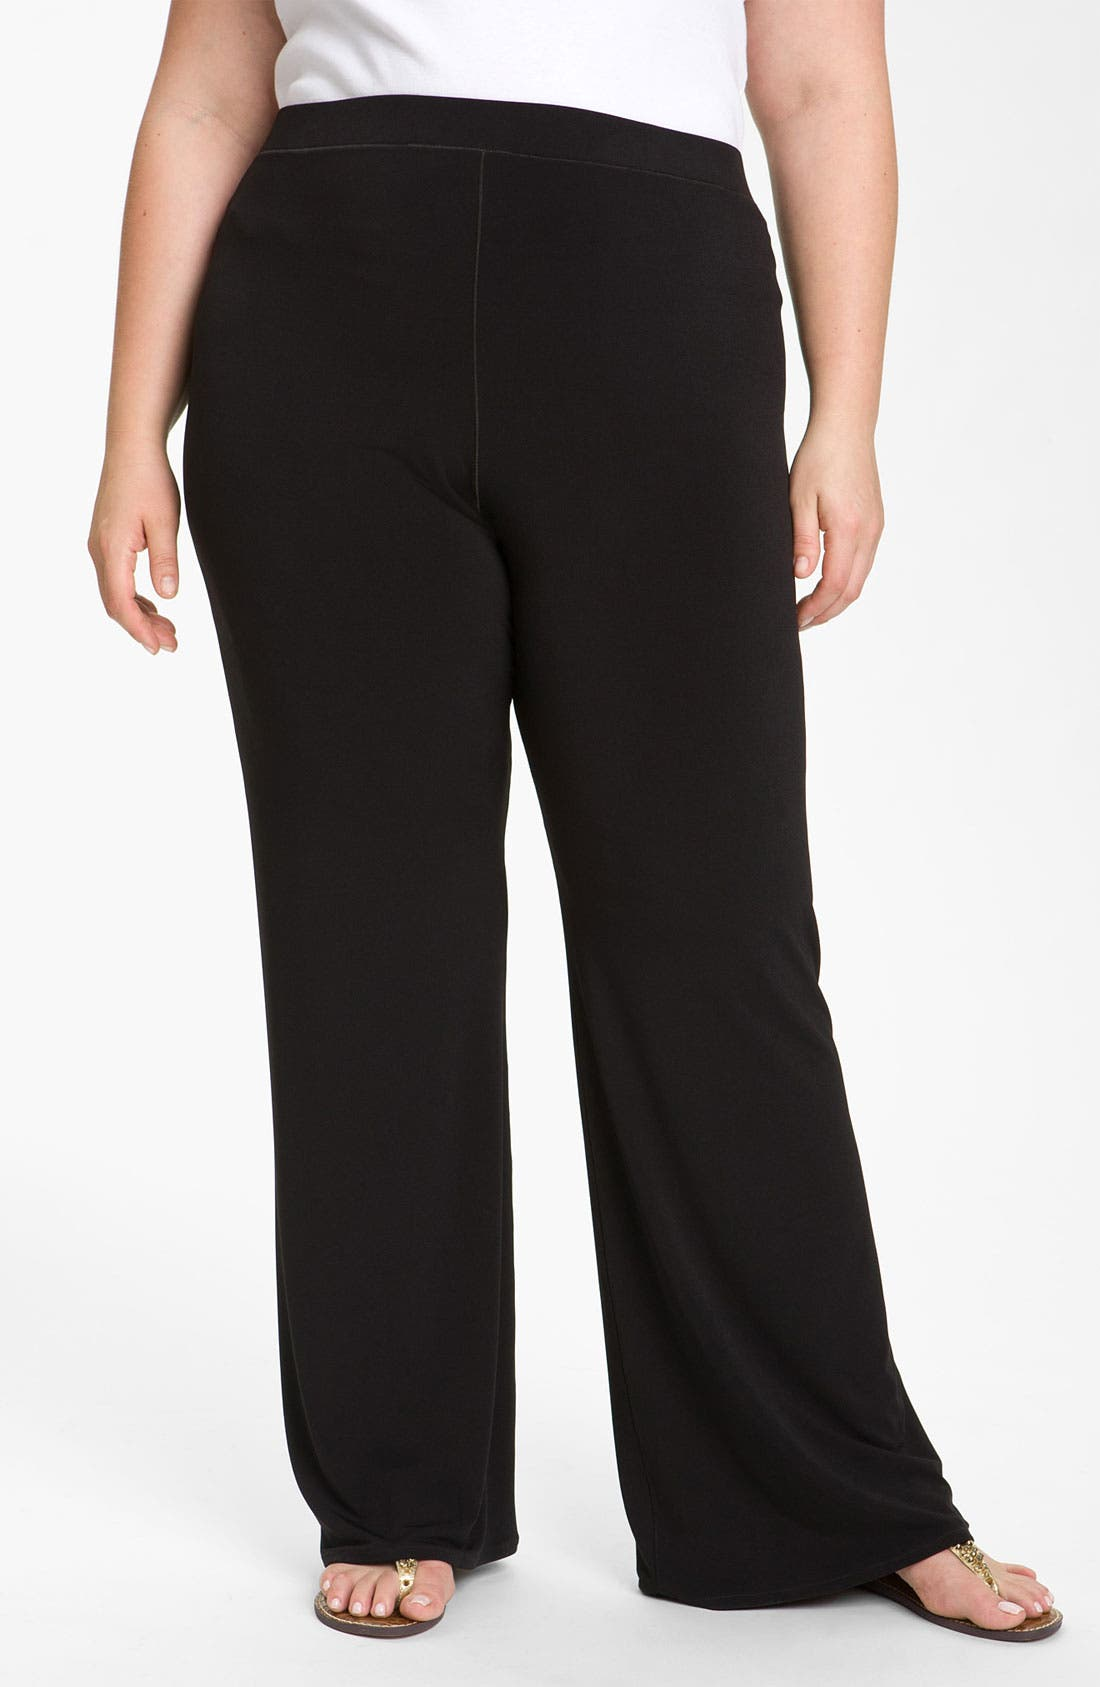 Alternate Image 1 Selected - Eva Varro 'Flaire' Pants (Plus)